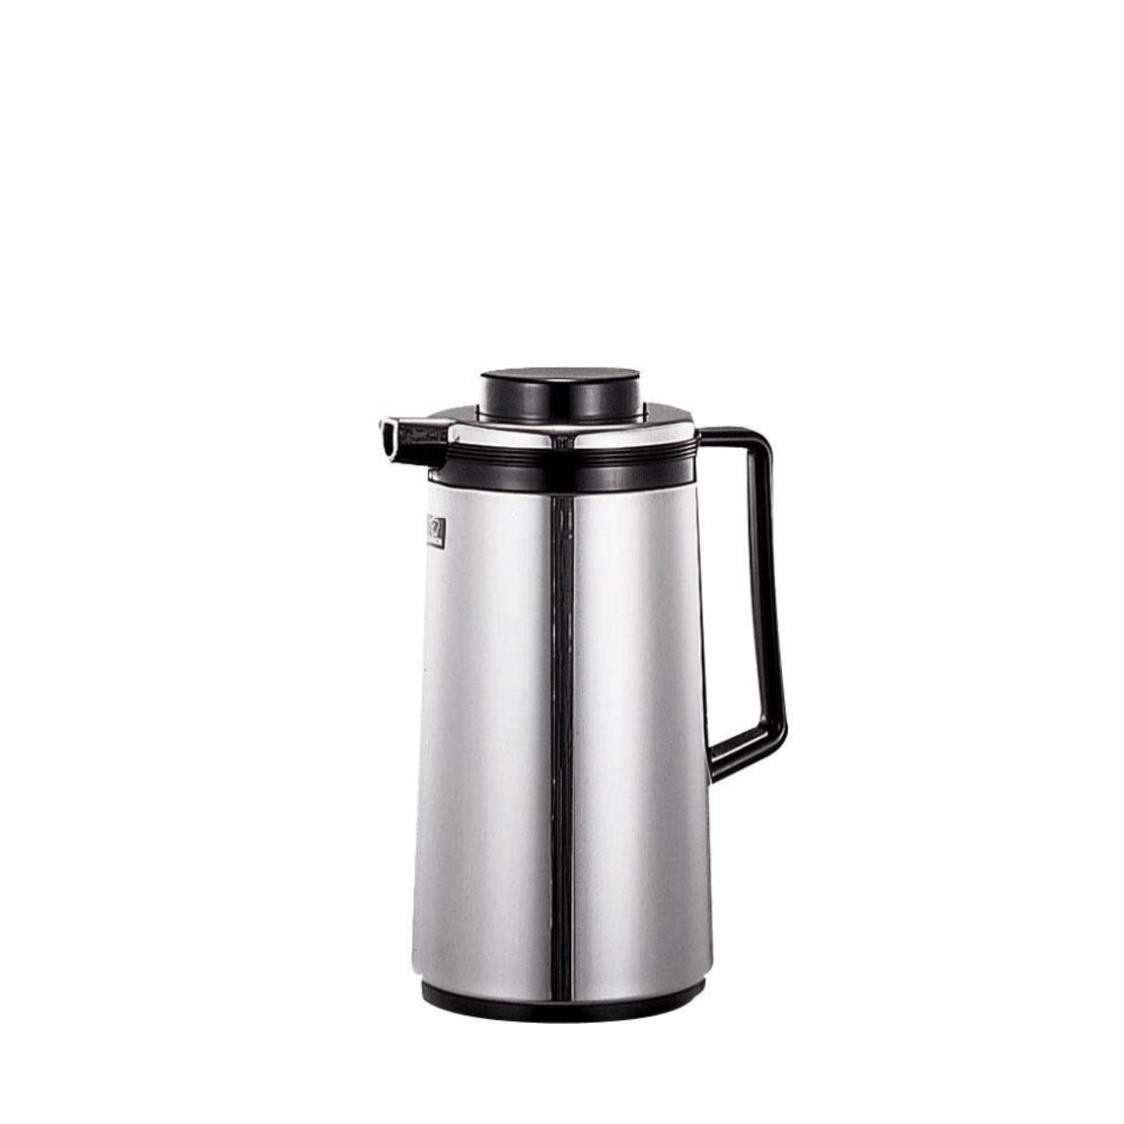 Handy Pot Stainless Steel